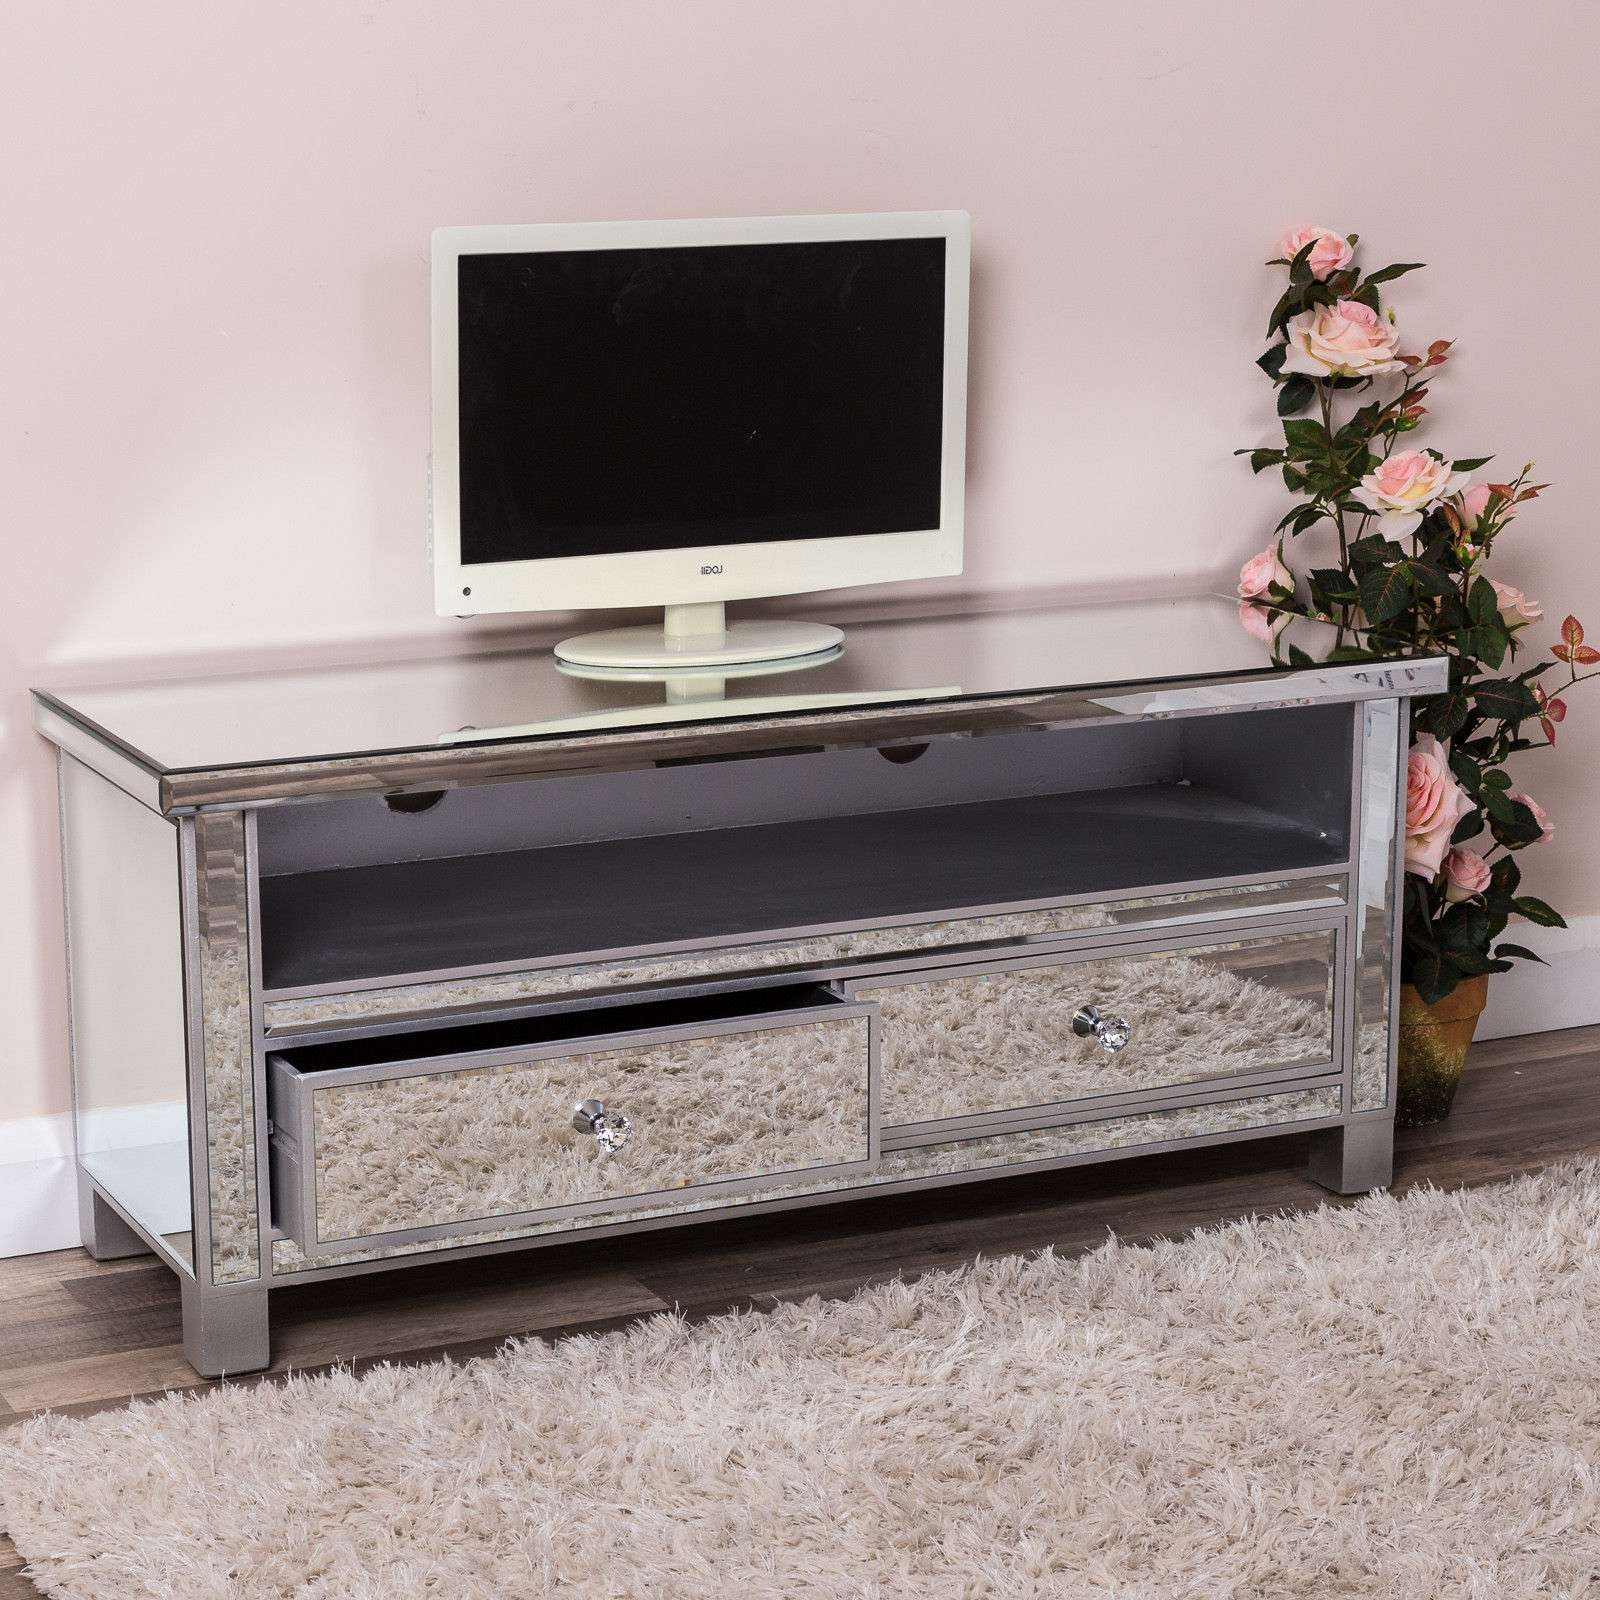 Mirrored Tv Stand | Ebay With Regard To Mirrored Tv Cabinets (View 10 of 20)